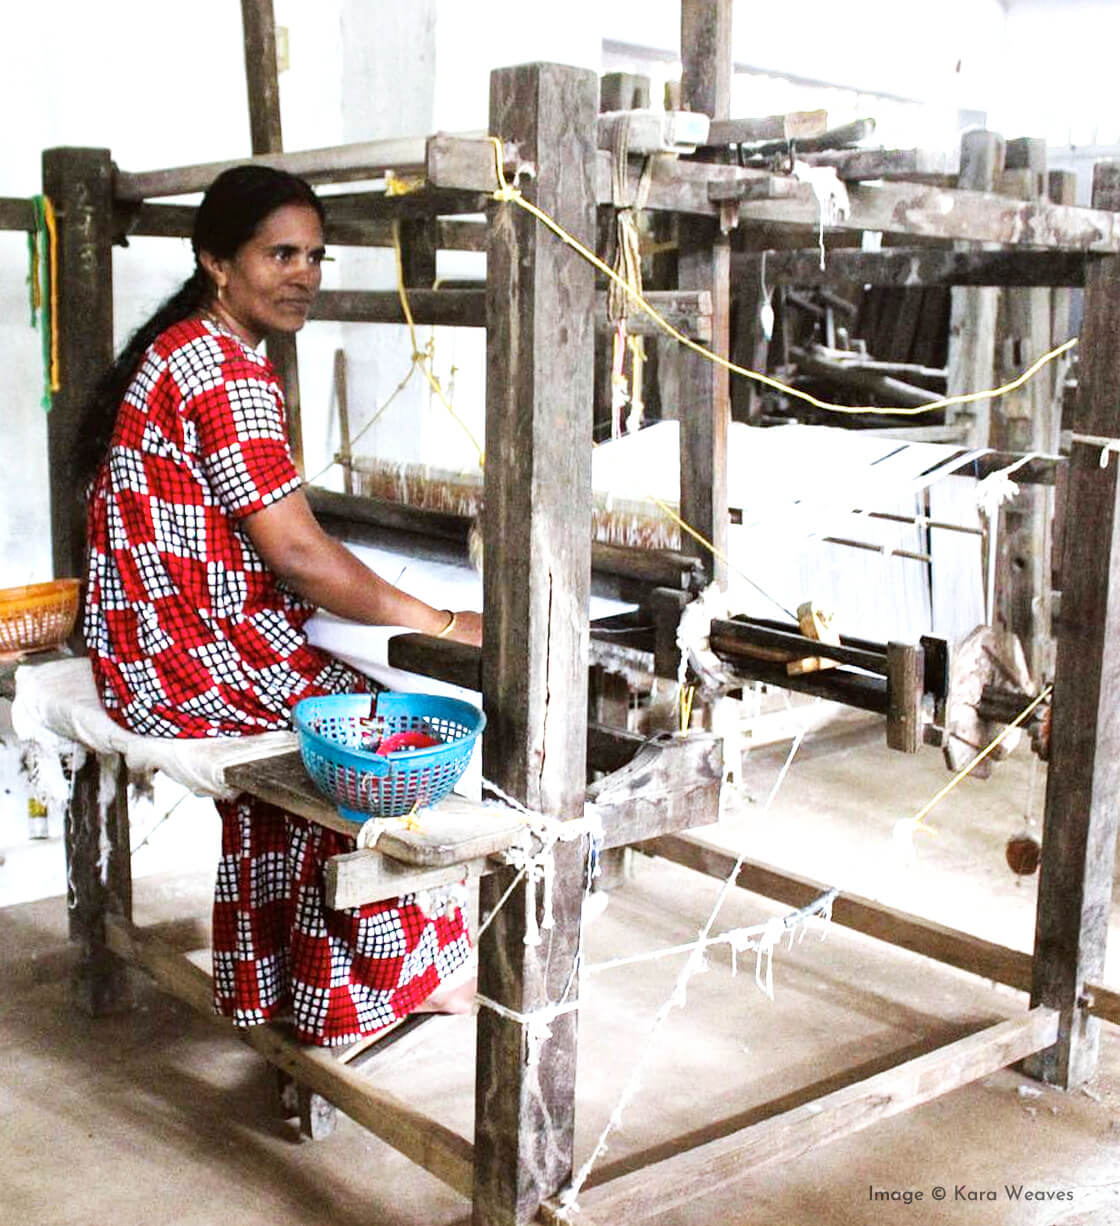 indian goods co blog origins of products handmade in india ethically produced sustainable considered living handwoven Thortu fabric kerala south india handloom woman weaver kara weaves